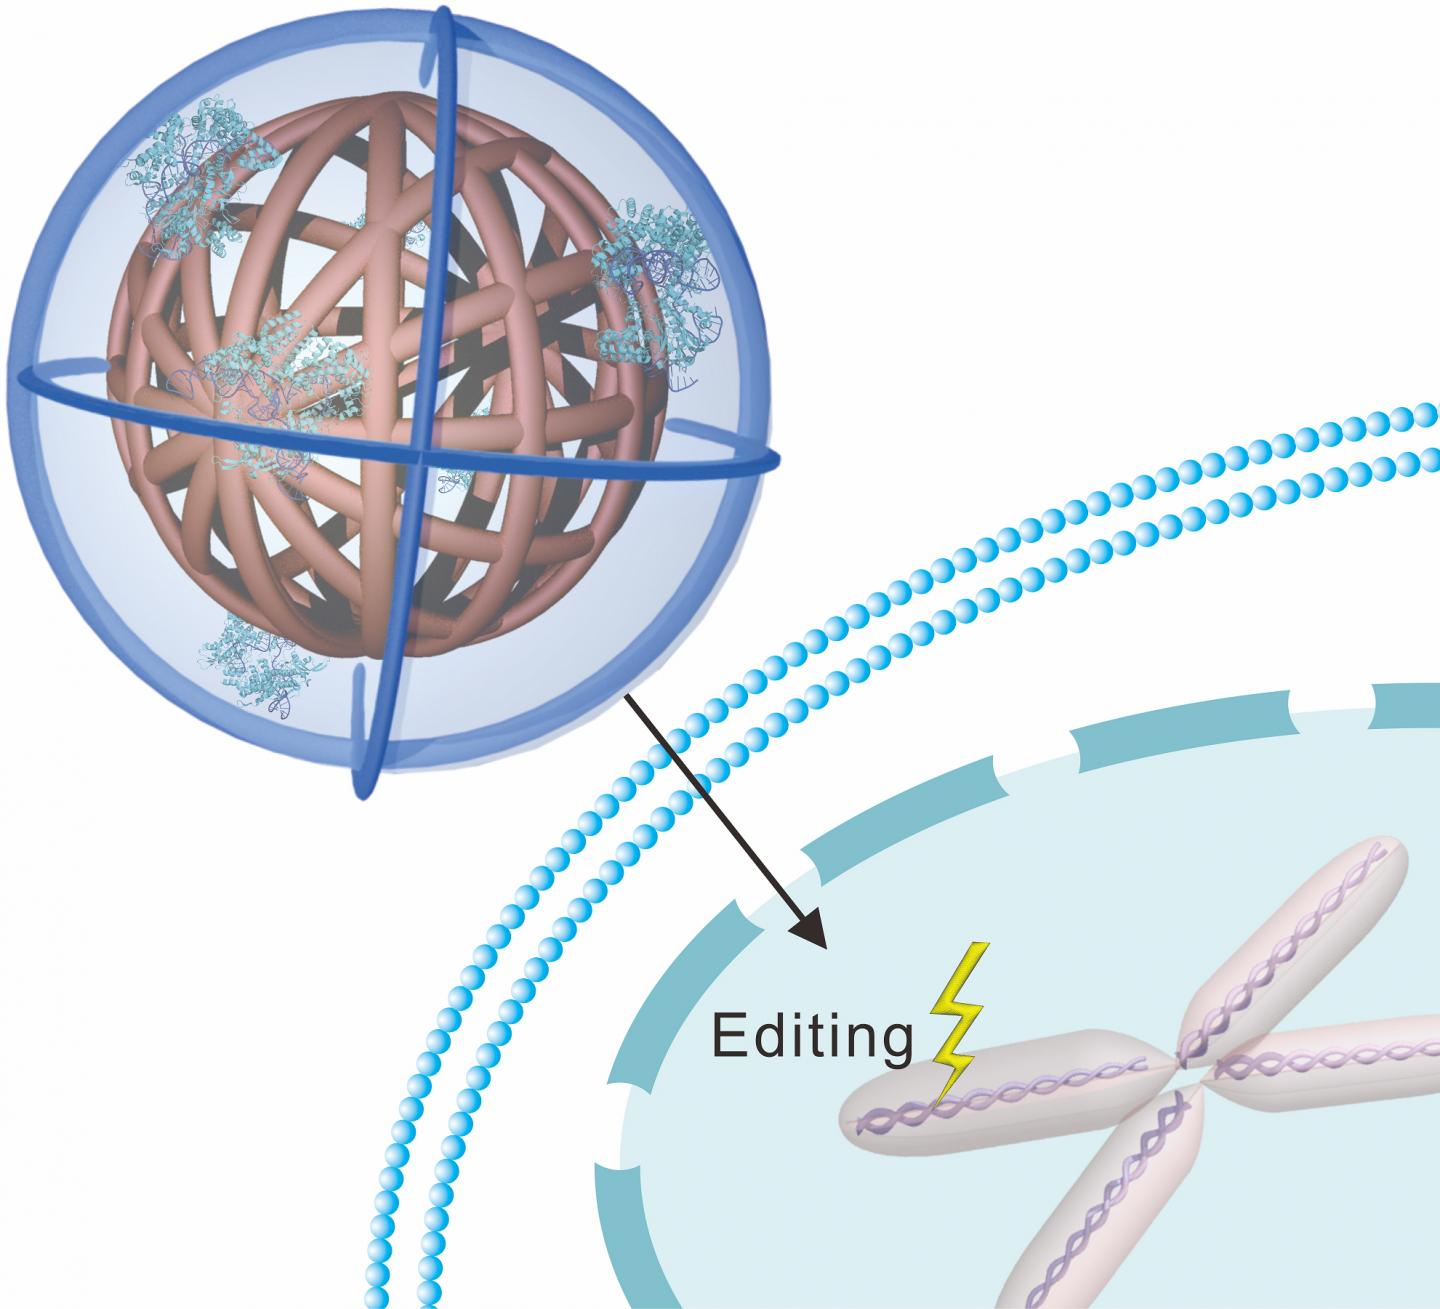 When the nanoclew comes into contact with a cell, the cell absorbs the nanoclew completely—swallowing it and wrapping it an endosome. Nanoclews are coated with a positively charged polymer that breaks down the endosome, setting the nanoclew free inside the cell, thus allowing CRISPR-Cas9 to make its way to the nucleus. [North Carolina State University]